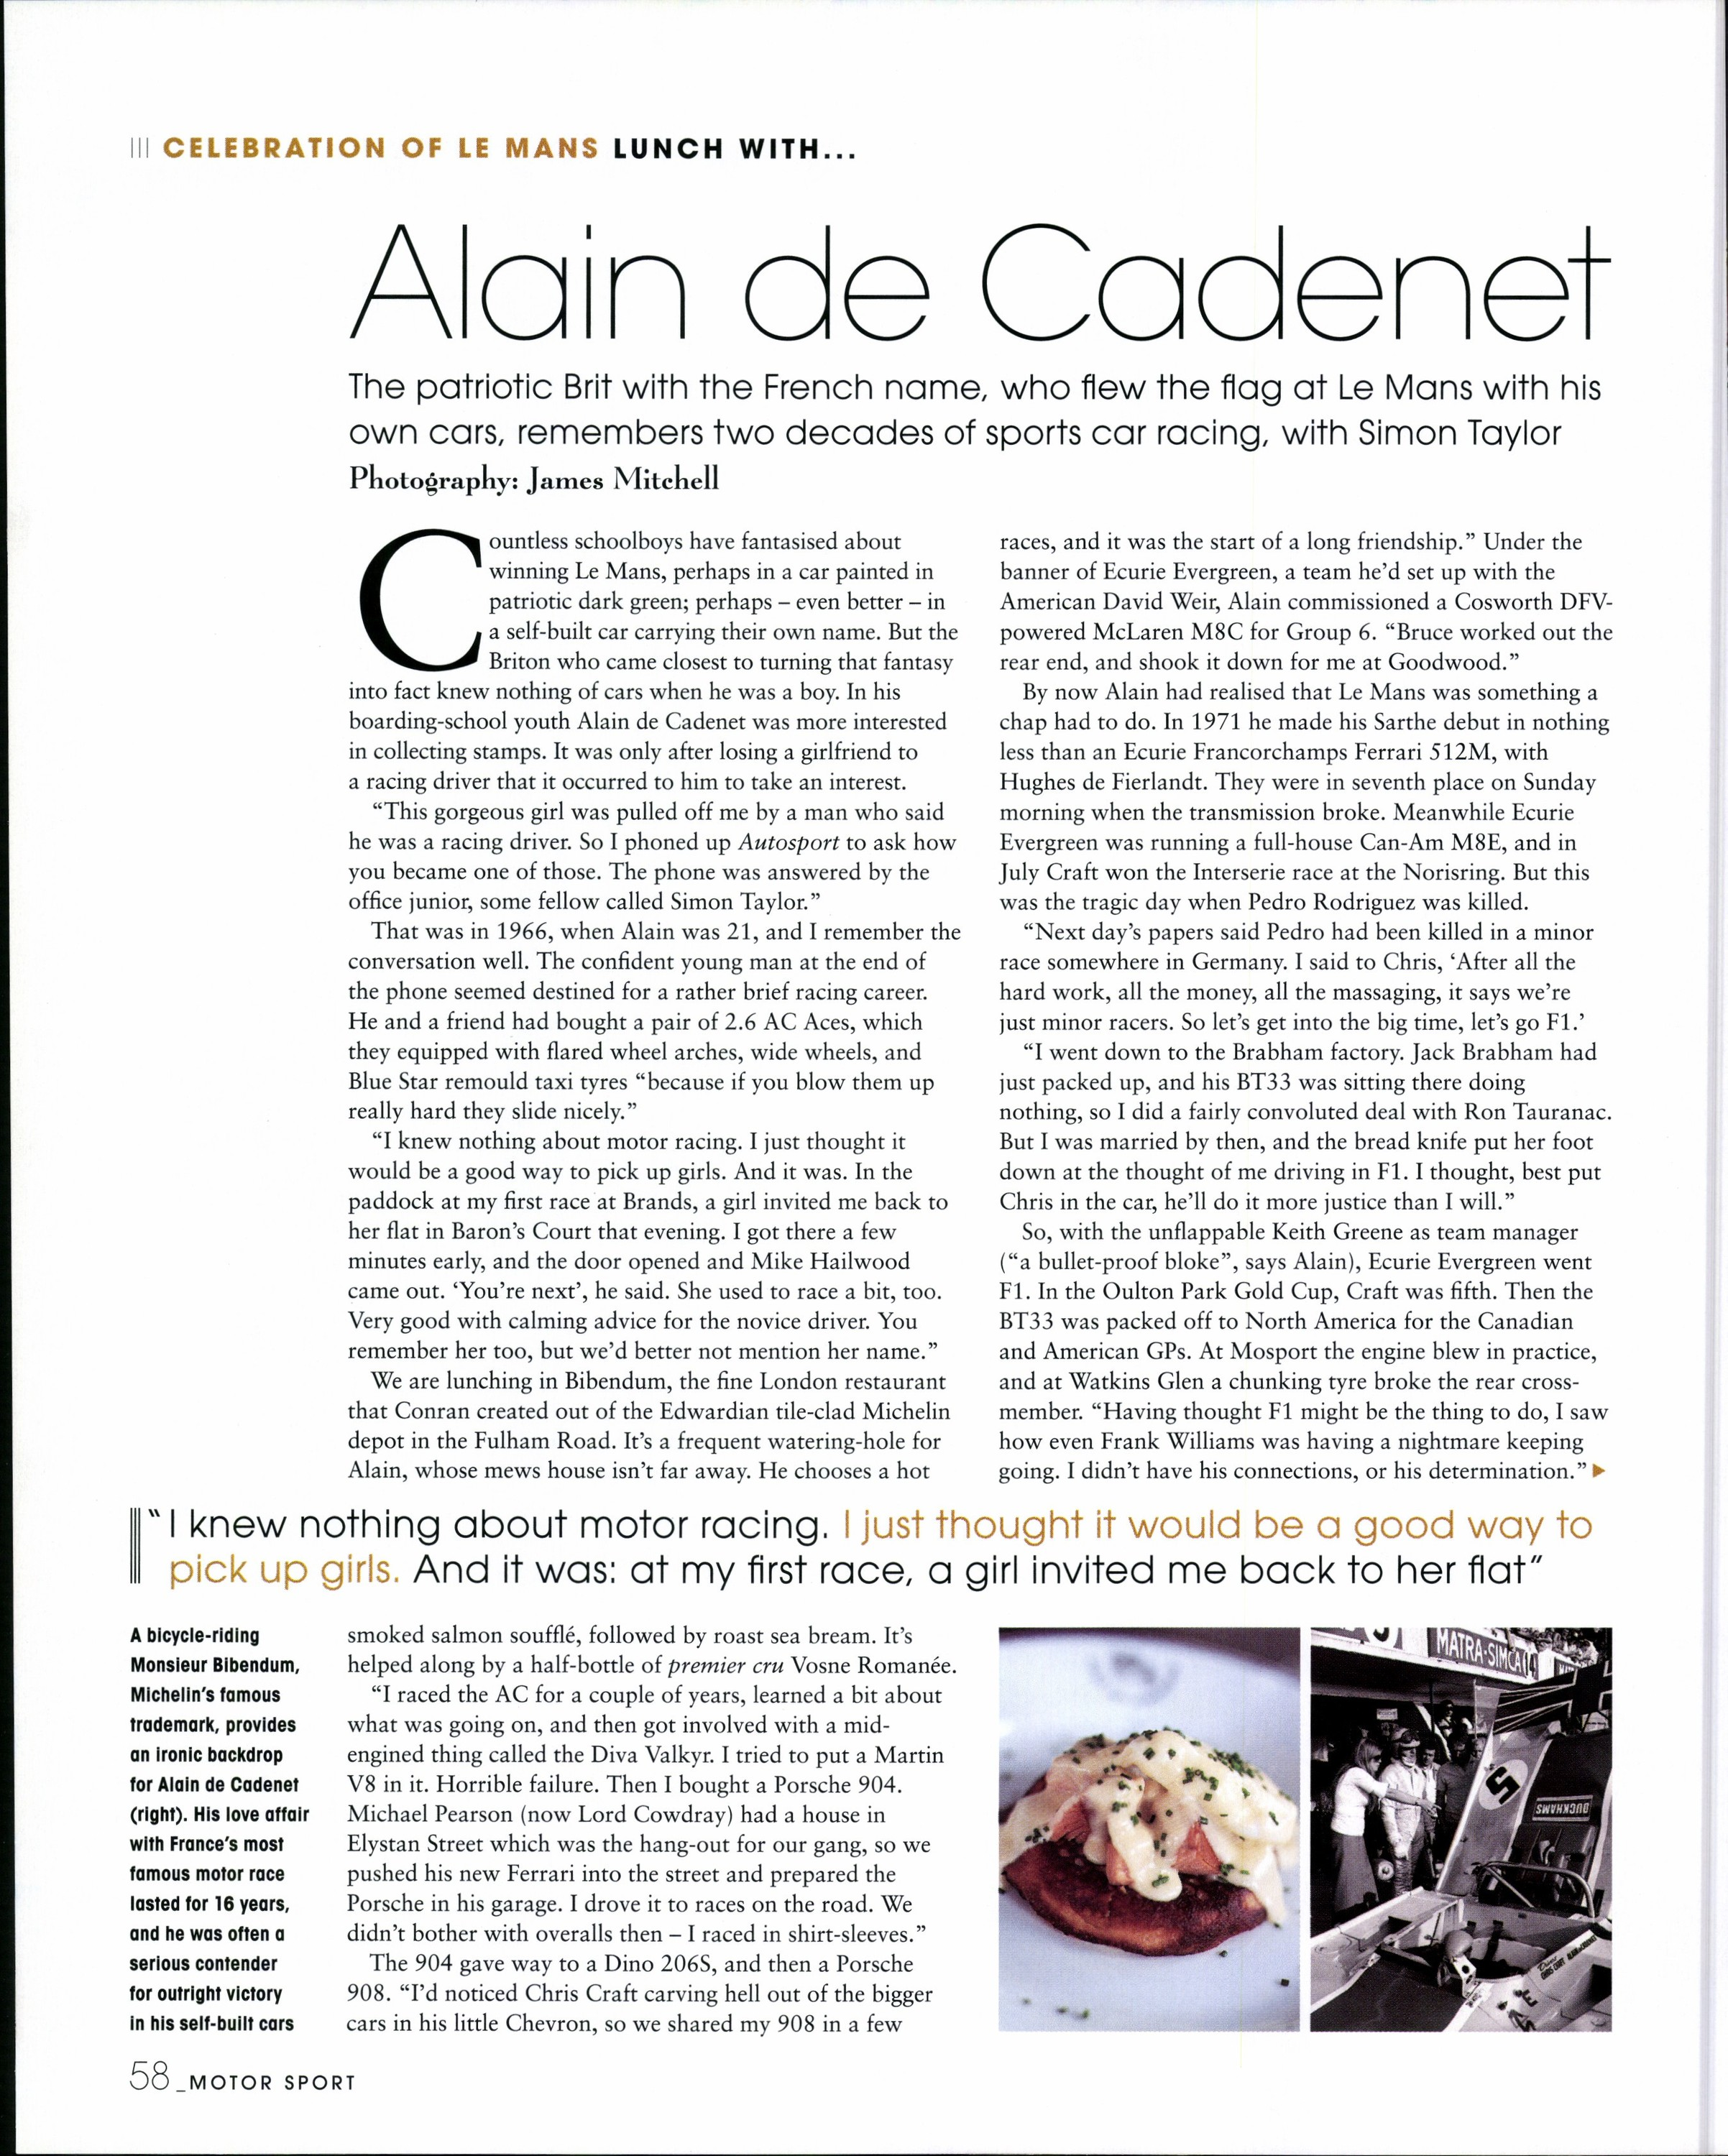 Lunch with... Alain de Cadenet image